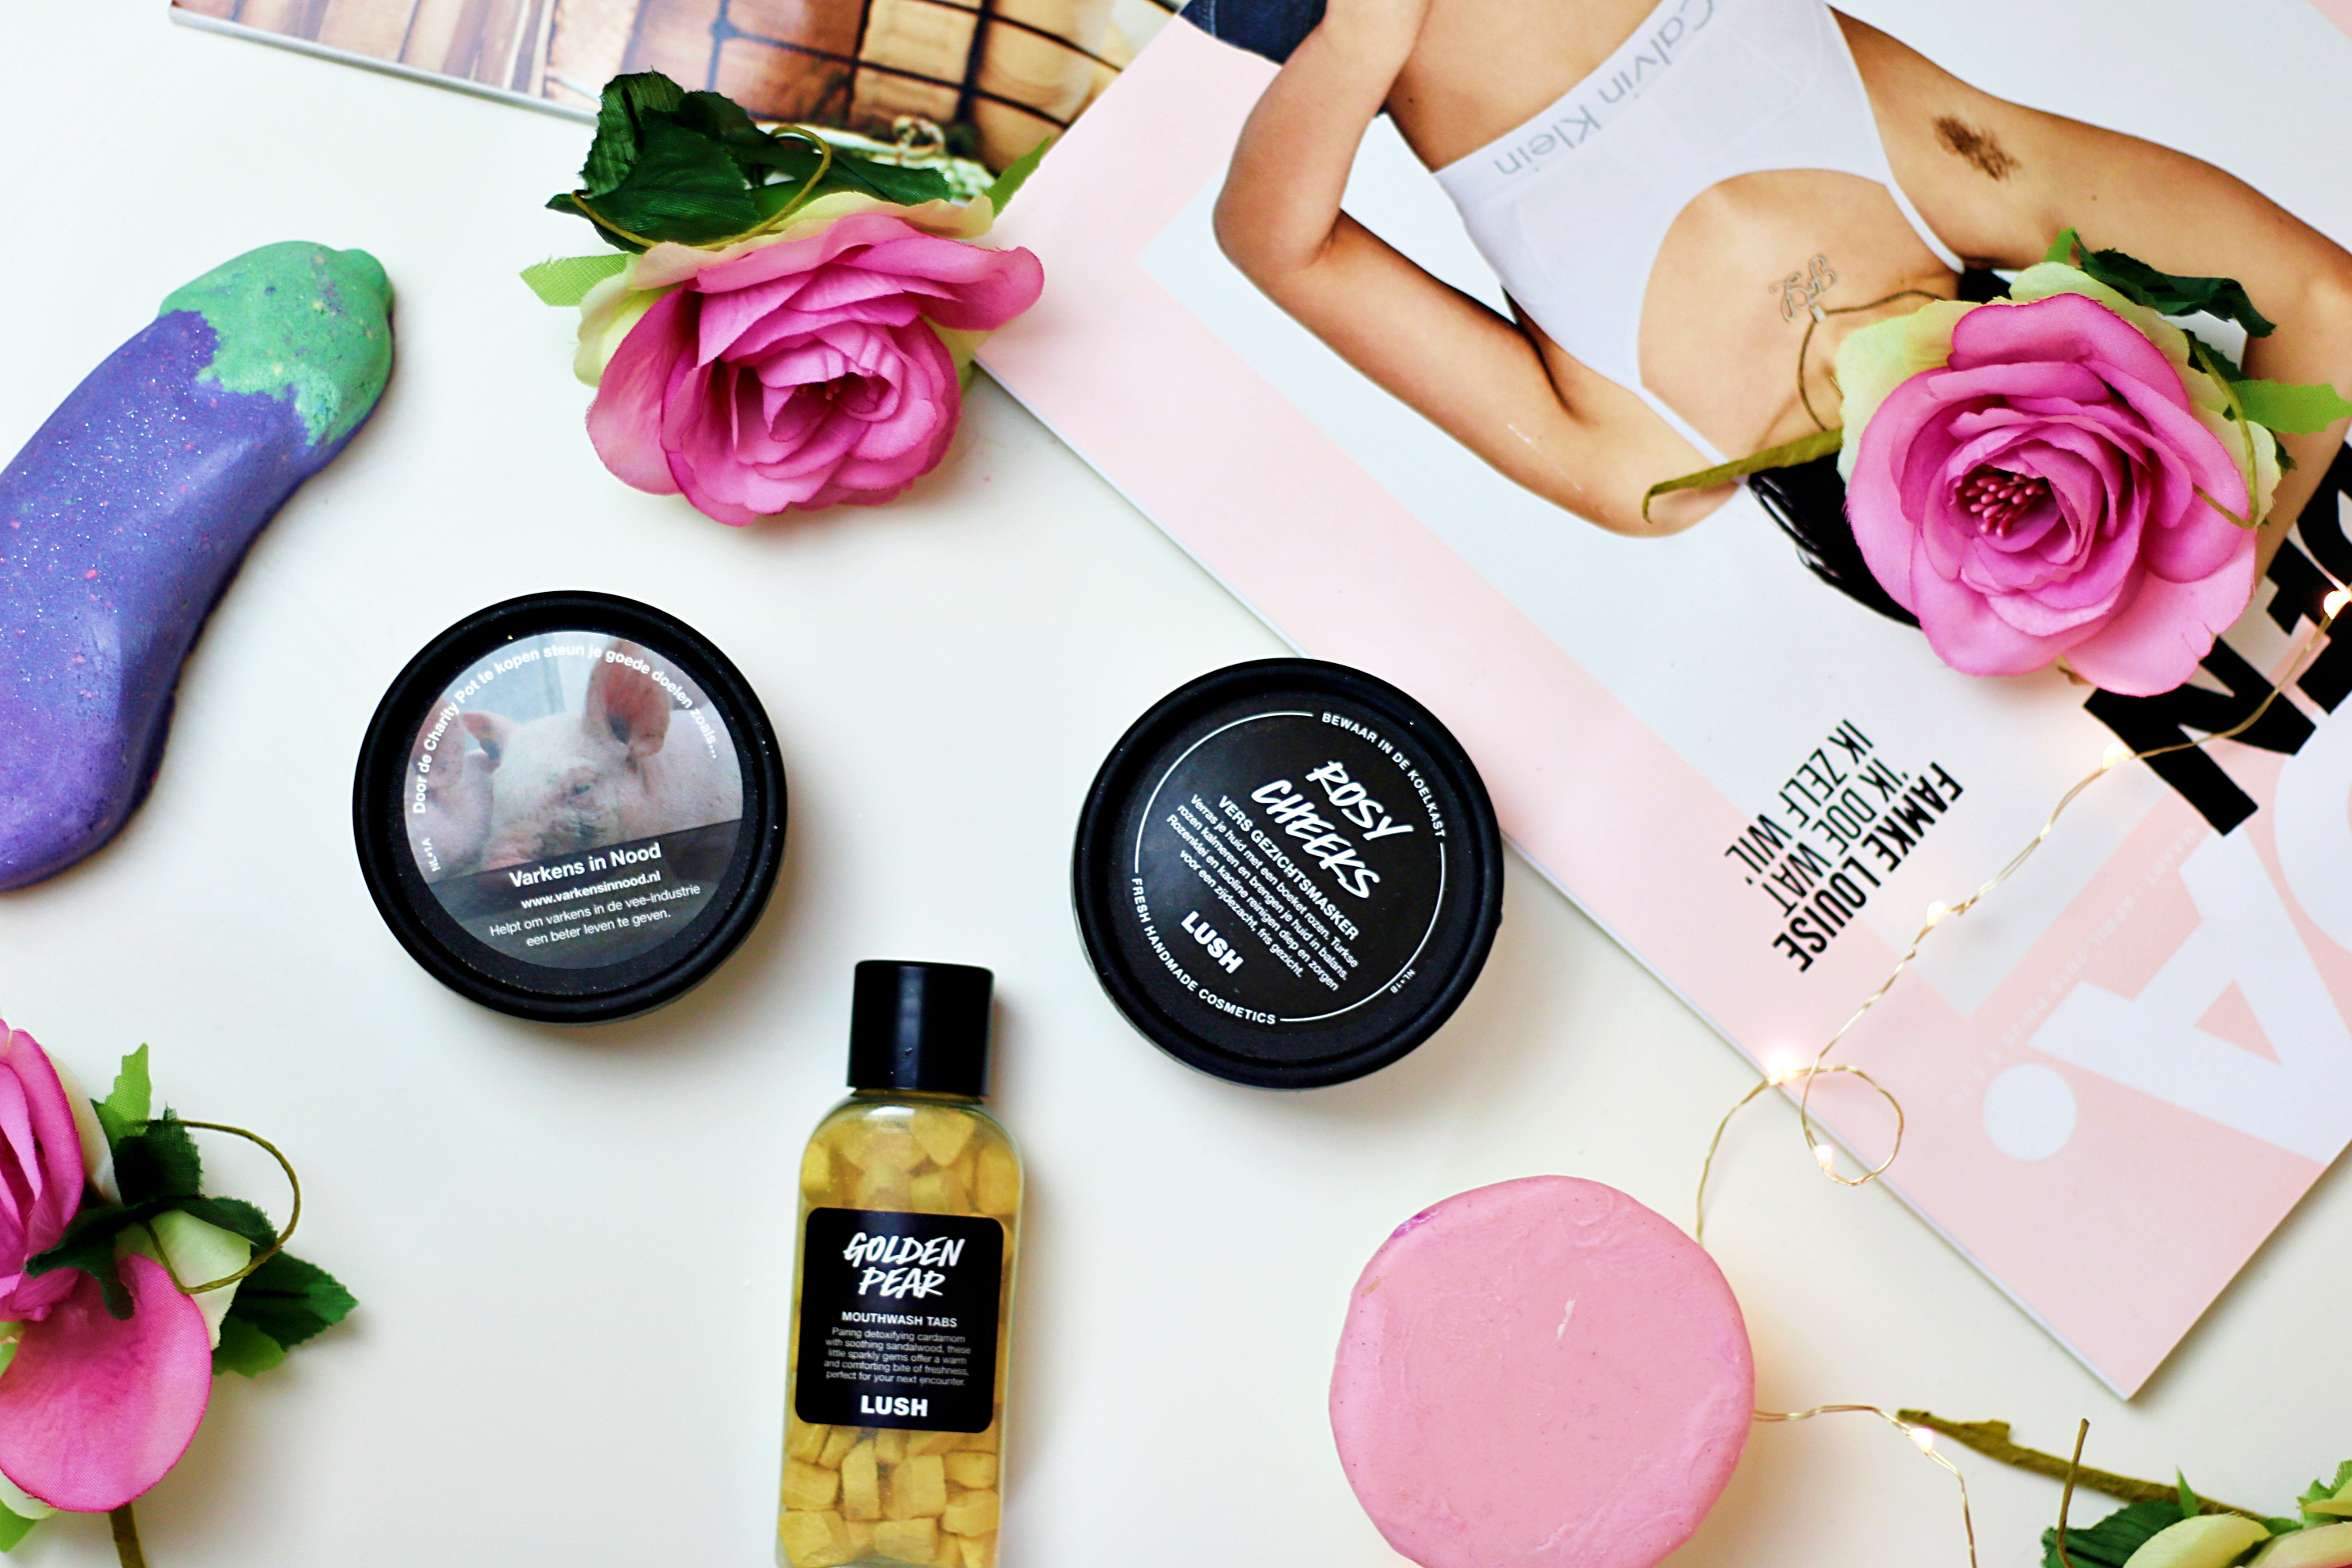 My Five Favourite Lush Products At The Moment